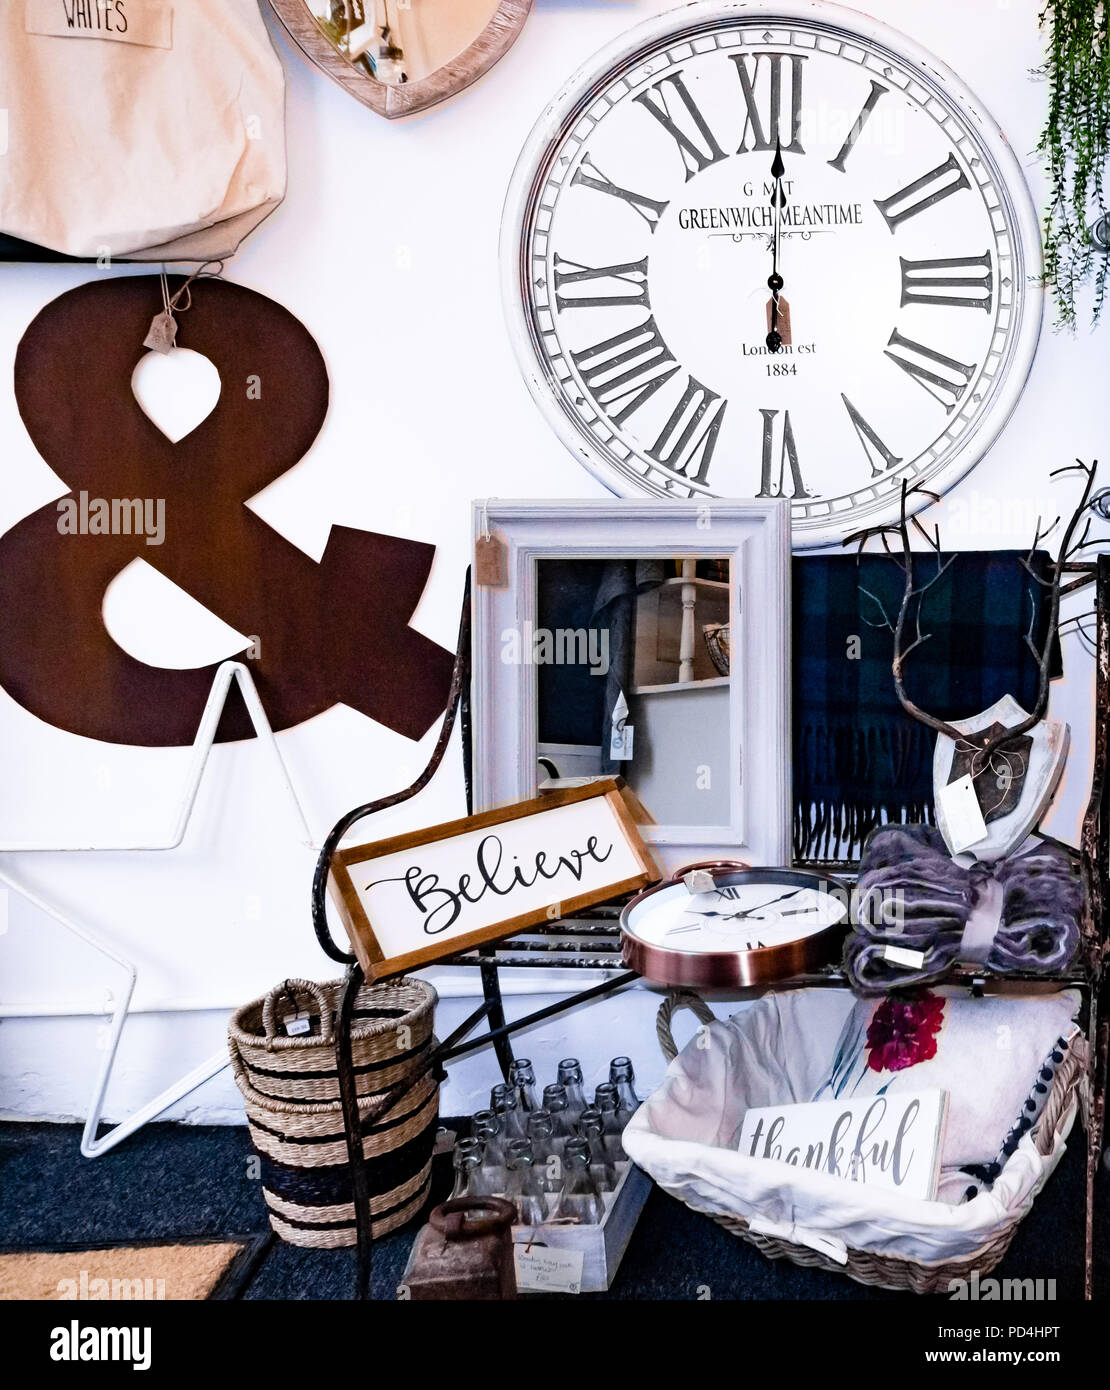 A display of home decor in an independently trading shop. - Stock Image